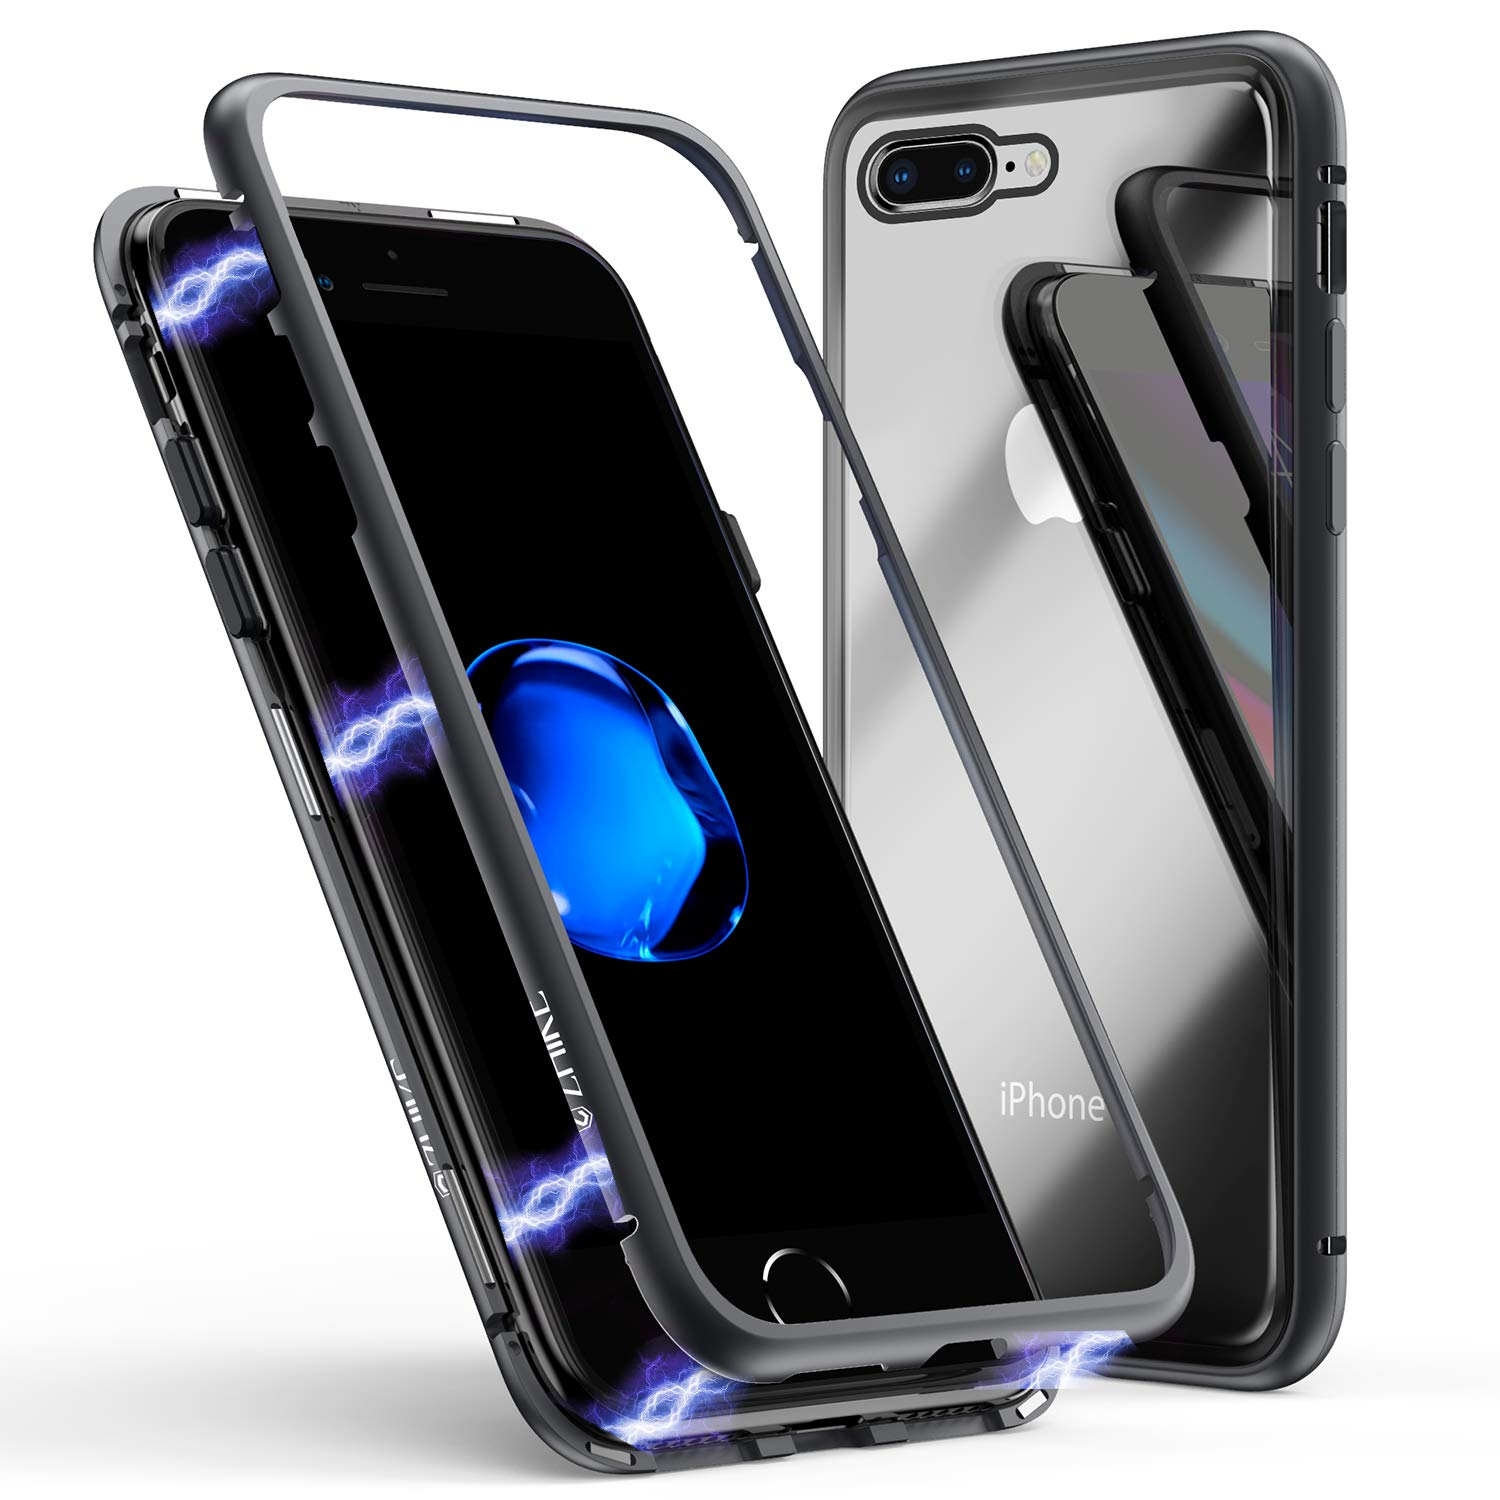 iPhone 8 Plus Case,iPhone 7 Plus Case, ZHIKE Magnetic Adsorption Case Ultra Slim Metal Frame Tempered Glass Back with Built-in Magnet Flip Cover for Apple iPhone 7 Plus/8 Plus (Clear Black)